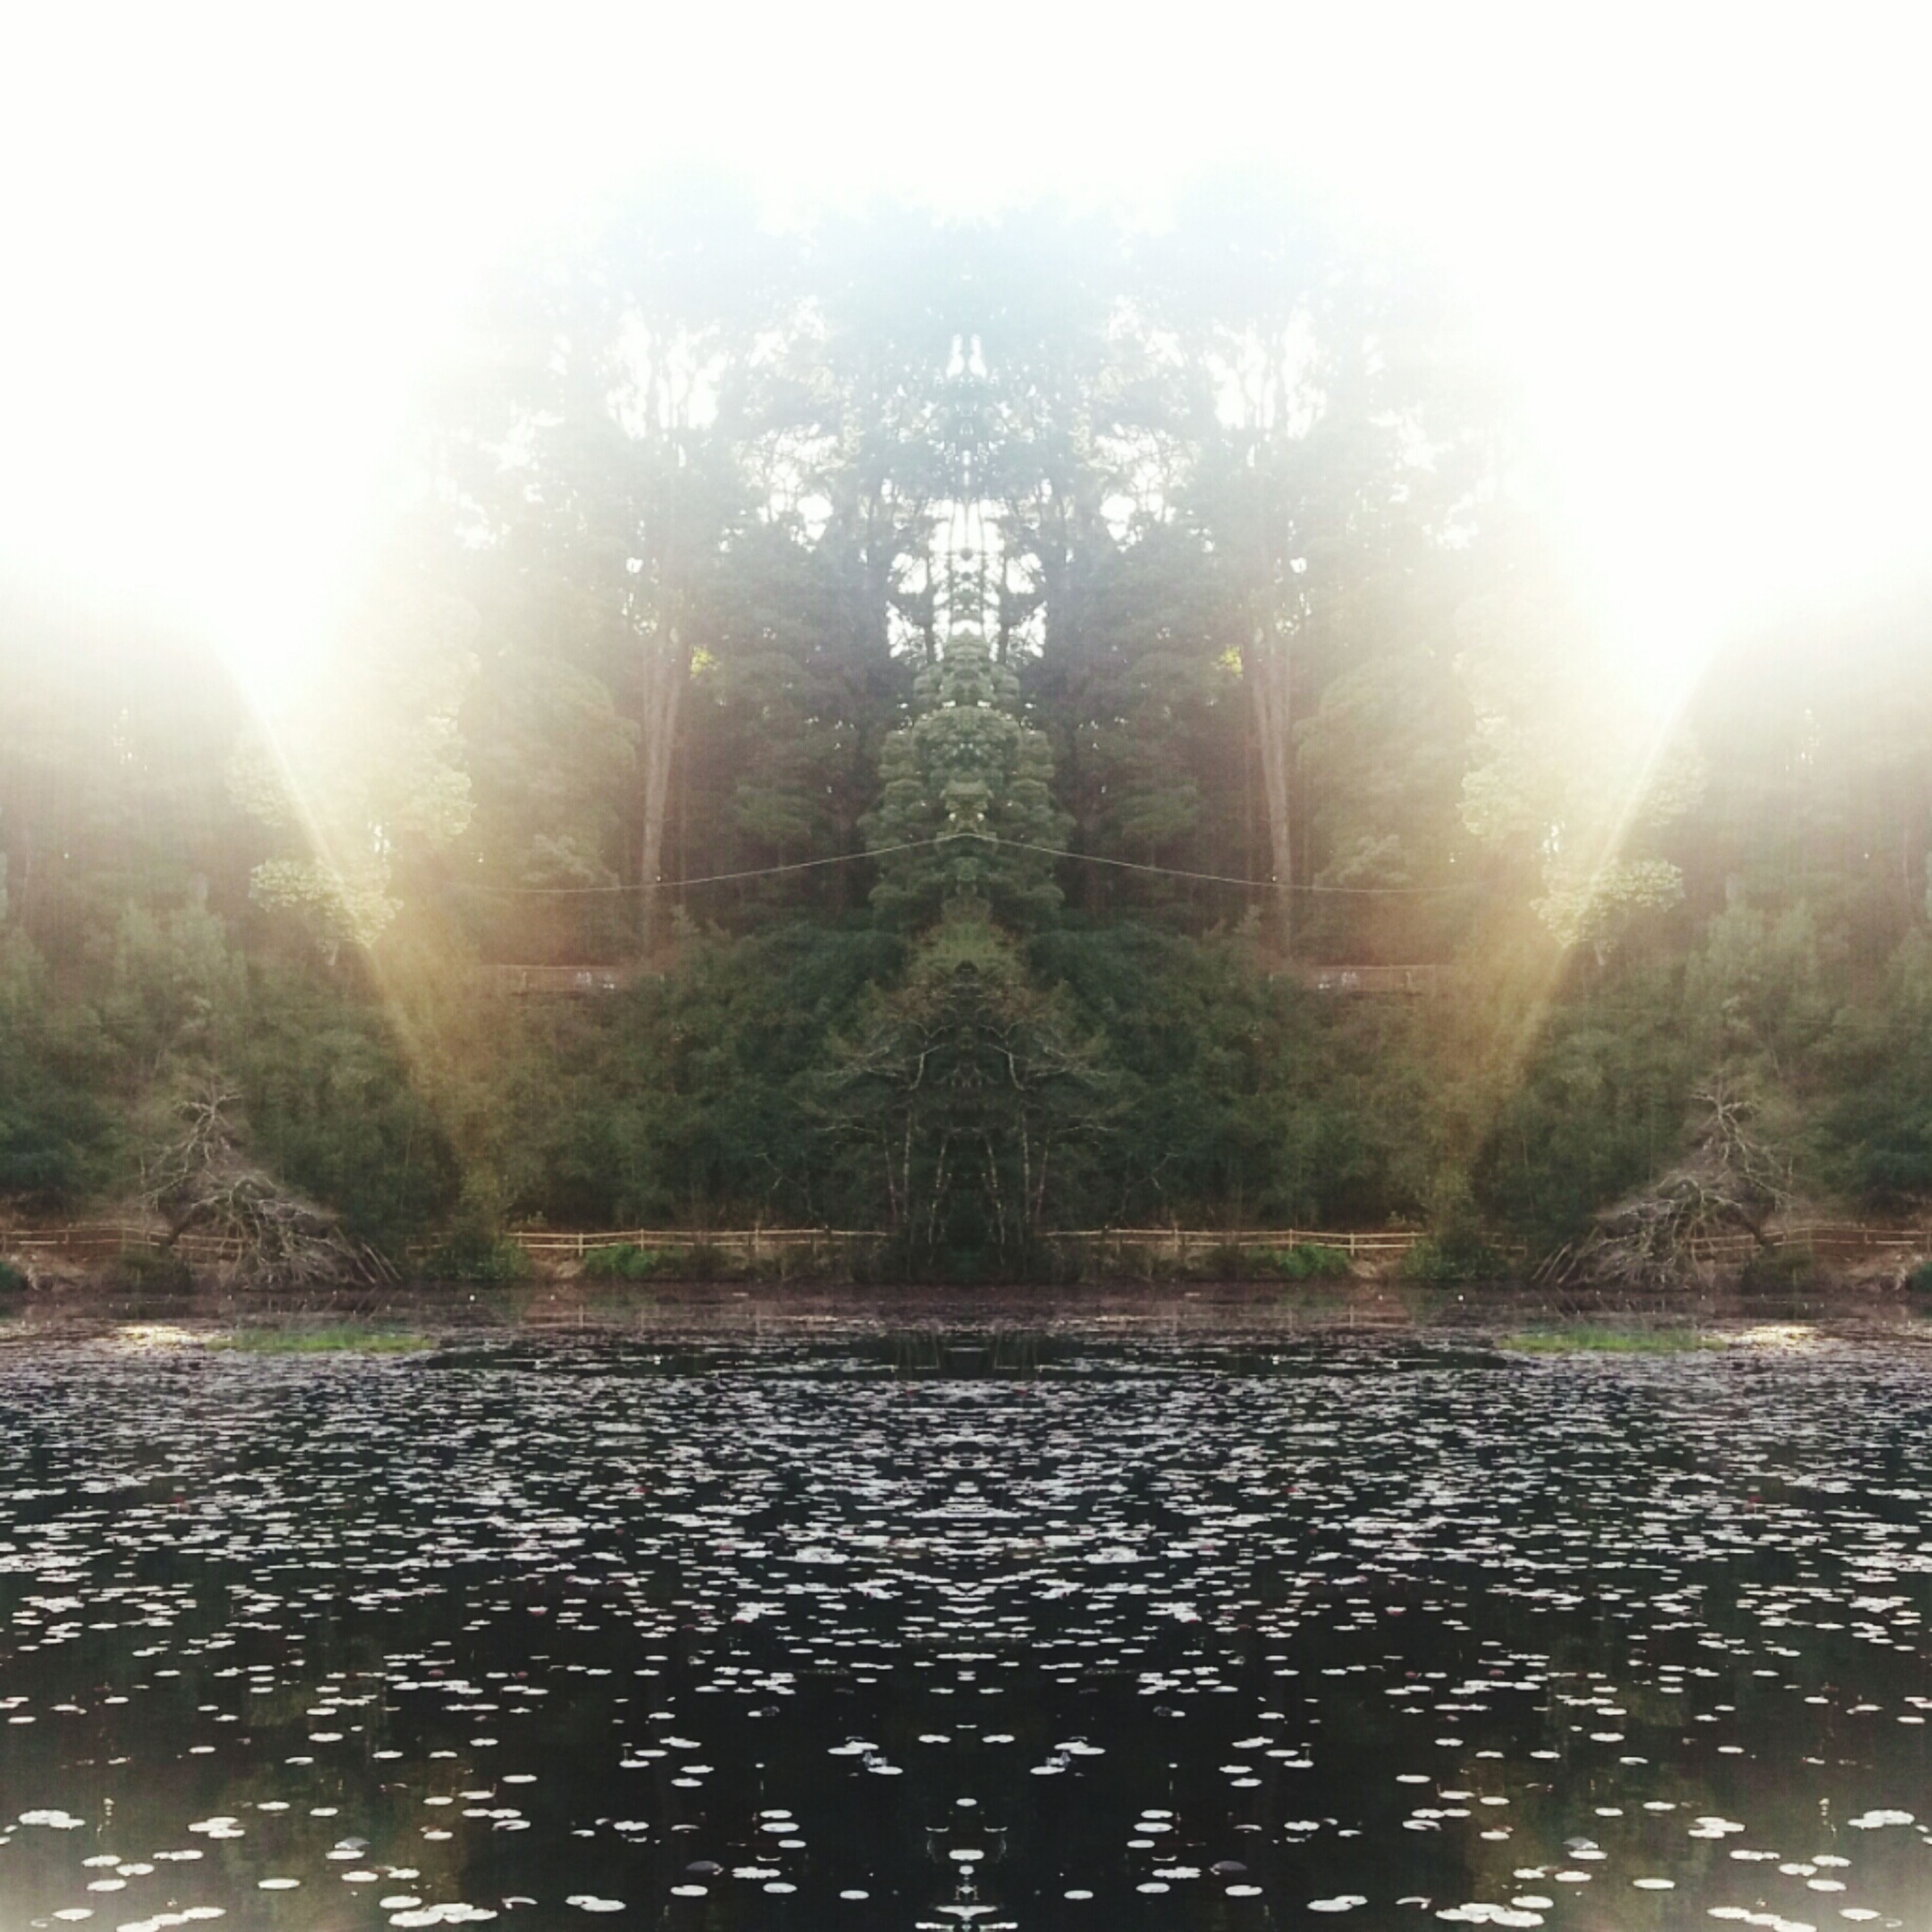 sunbeam, water, tree, lens flare, tranquil scene, tranquility, waterfront, sun, sunlight, spirituality, scenics, lake, nature, beauty in nature, bright, day, lush foliage, garden, place of worship, majestic, sunrays, back lit